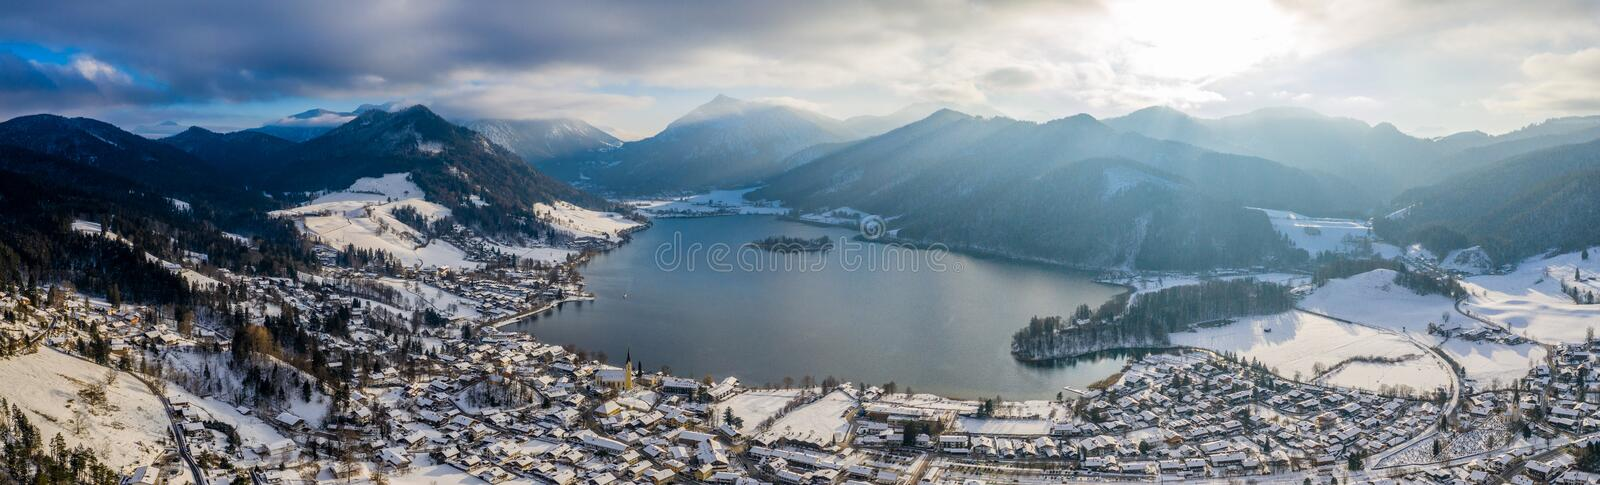 Aerial View Lake Schliersee Winter, Germany stock photo